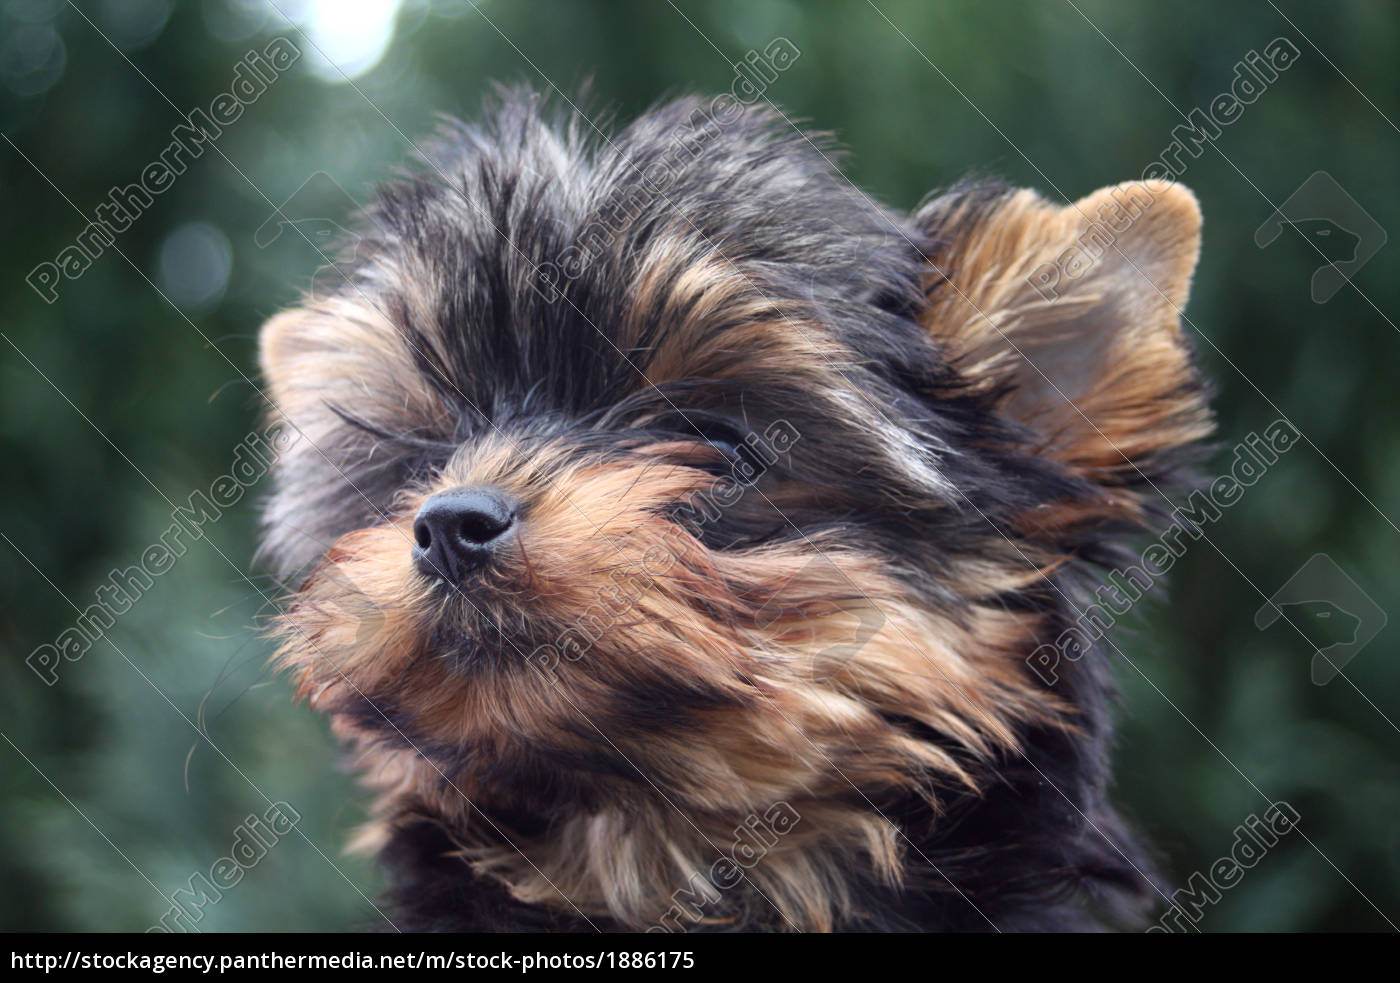 Yorkie Puppy Royalty Free Image 1886175 Panthermedia Stock Agency